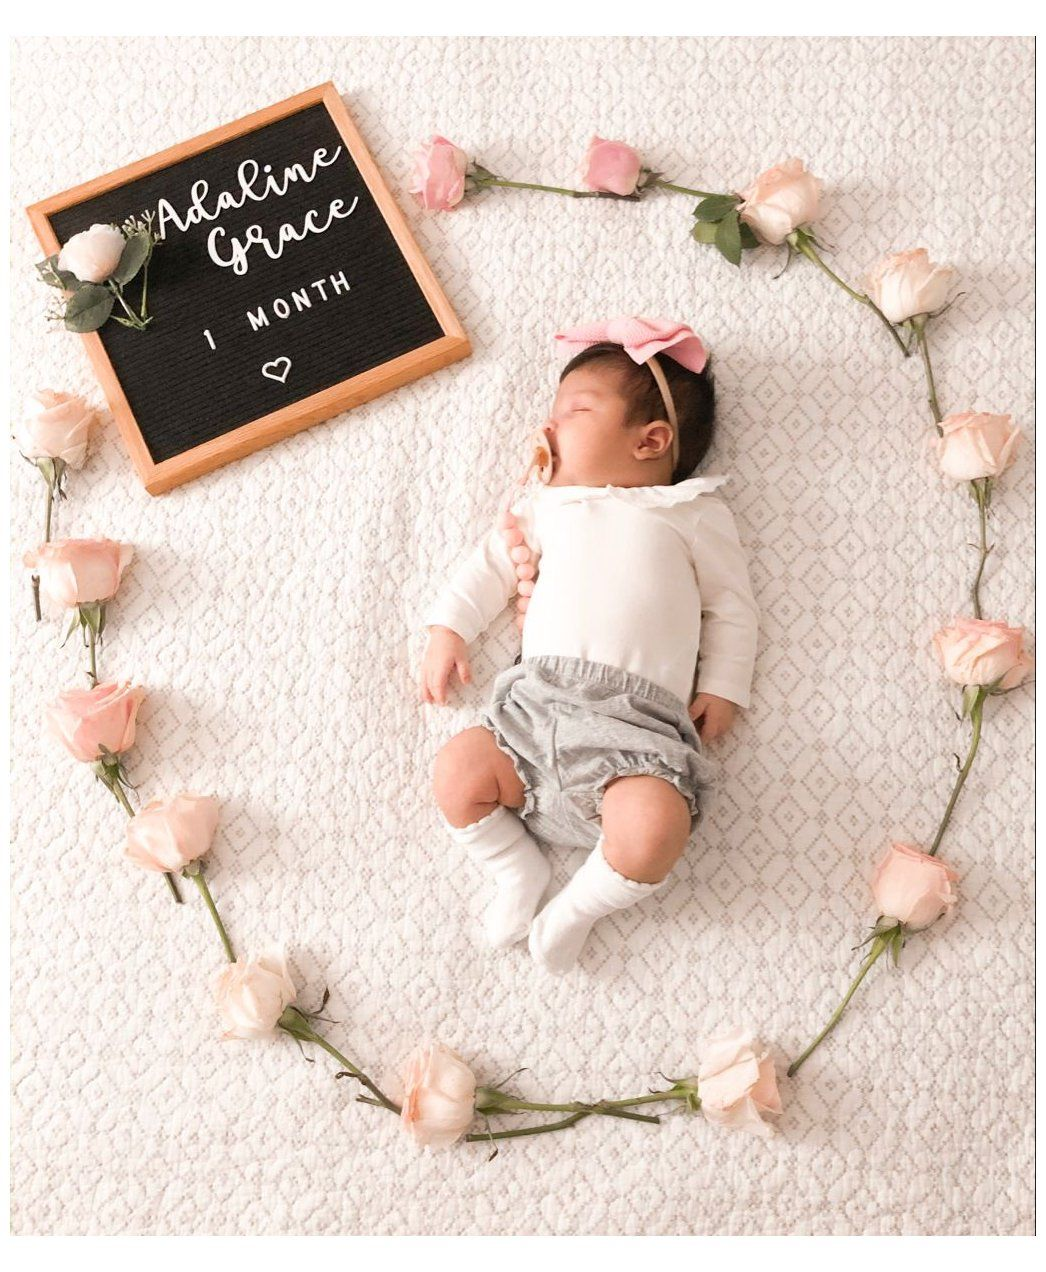 1 Month Old 2 Month Old Baby Girl Outfits 2montholdbabygirloutfits In 2021 Baby Milestones Pictures Baby Milestone Photos Monthly Baby Photos